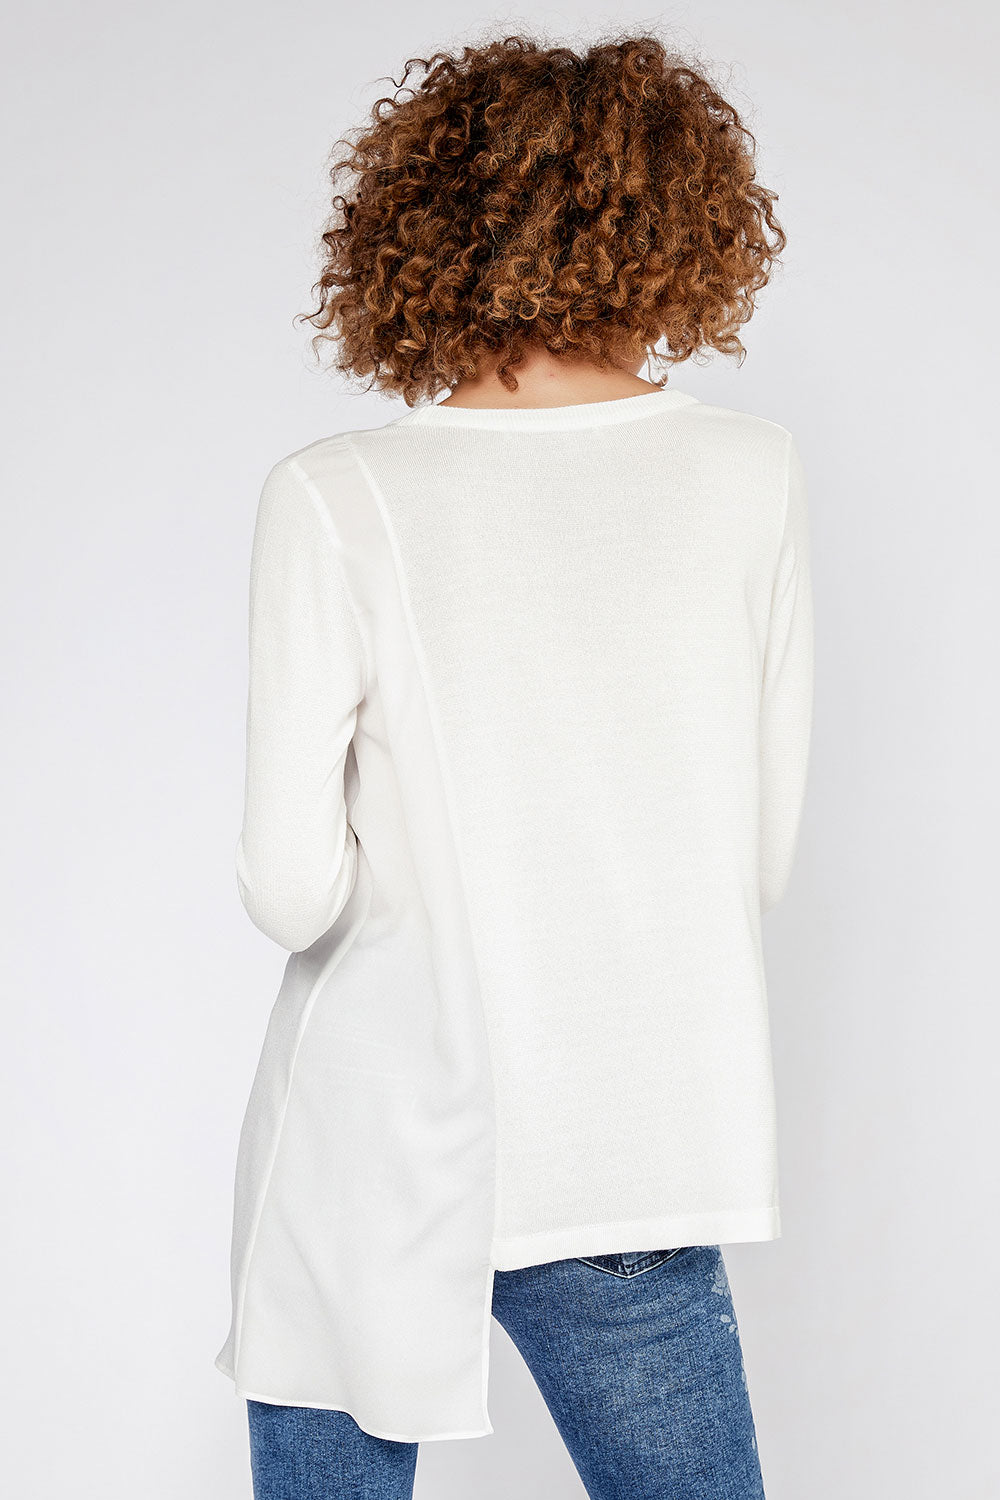 Underwater Aura- Knit Wear Blouse